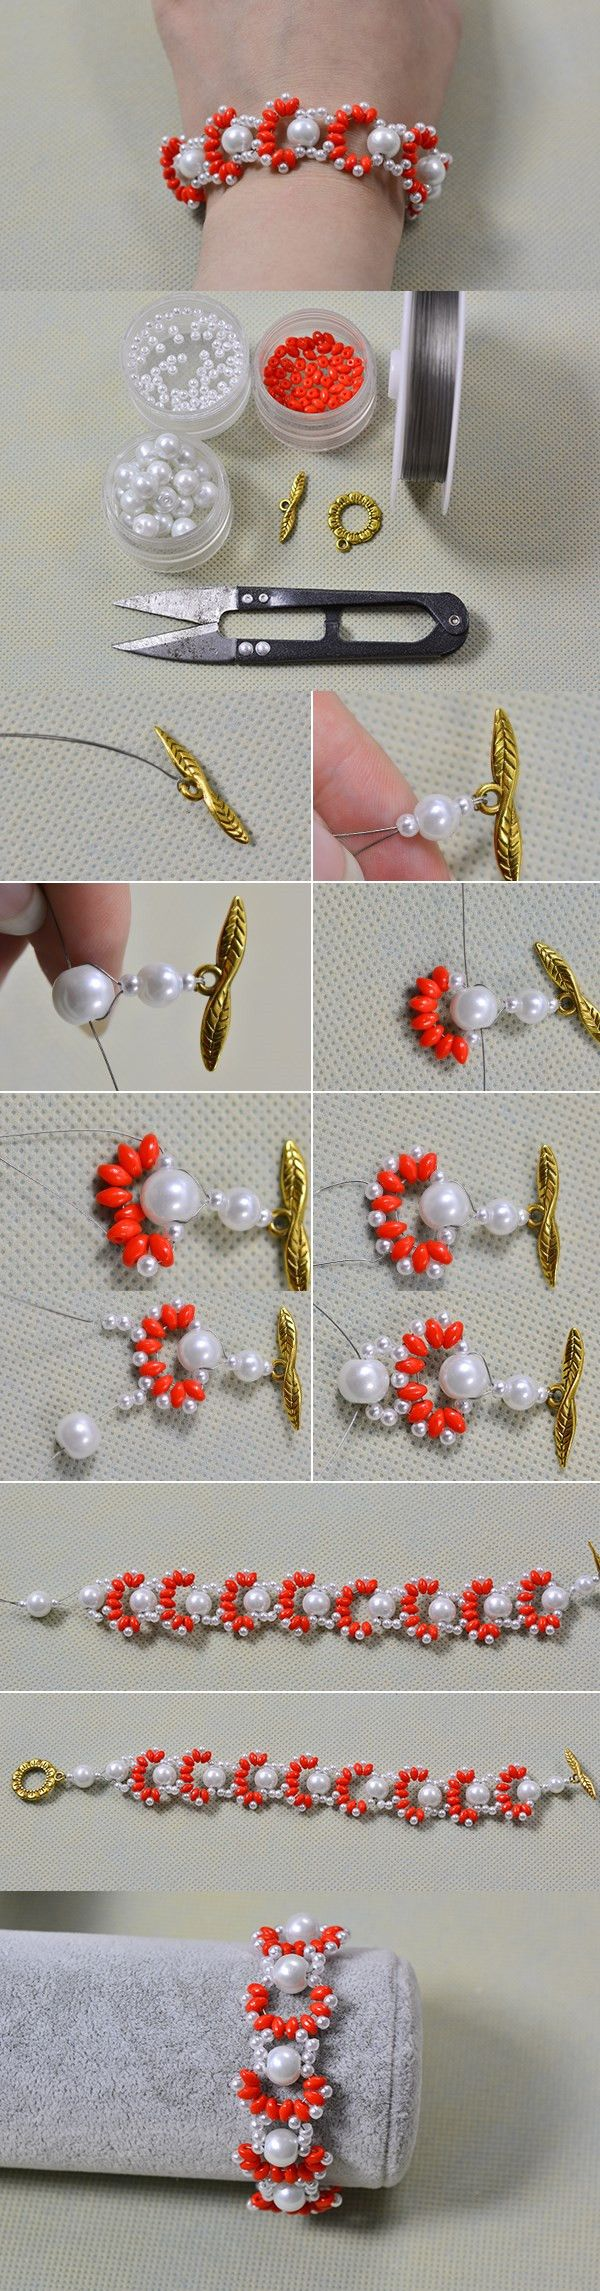 DIY Homemade Two Hole Seed Bead Woven Bracelet